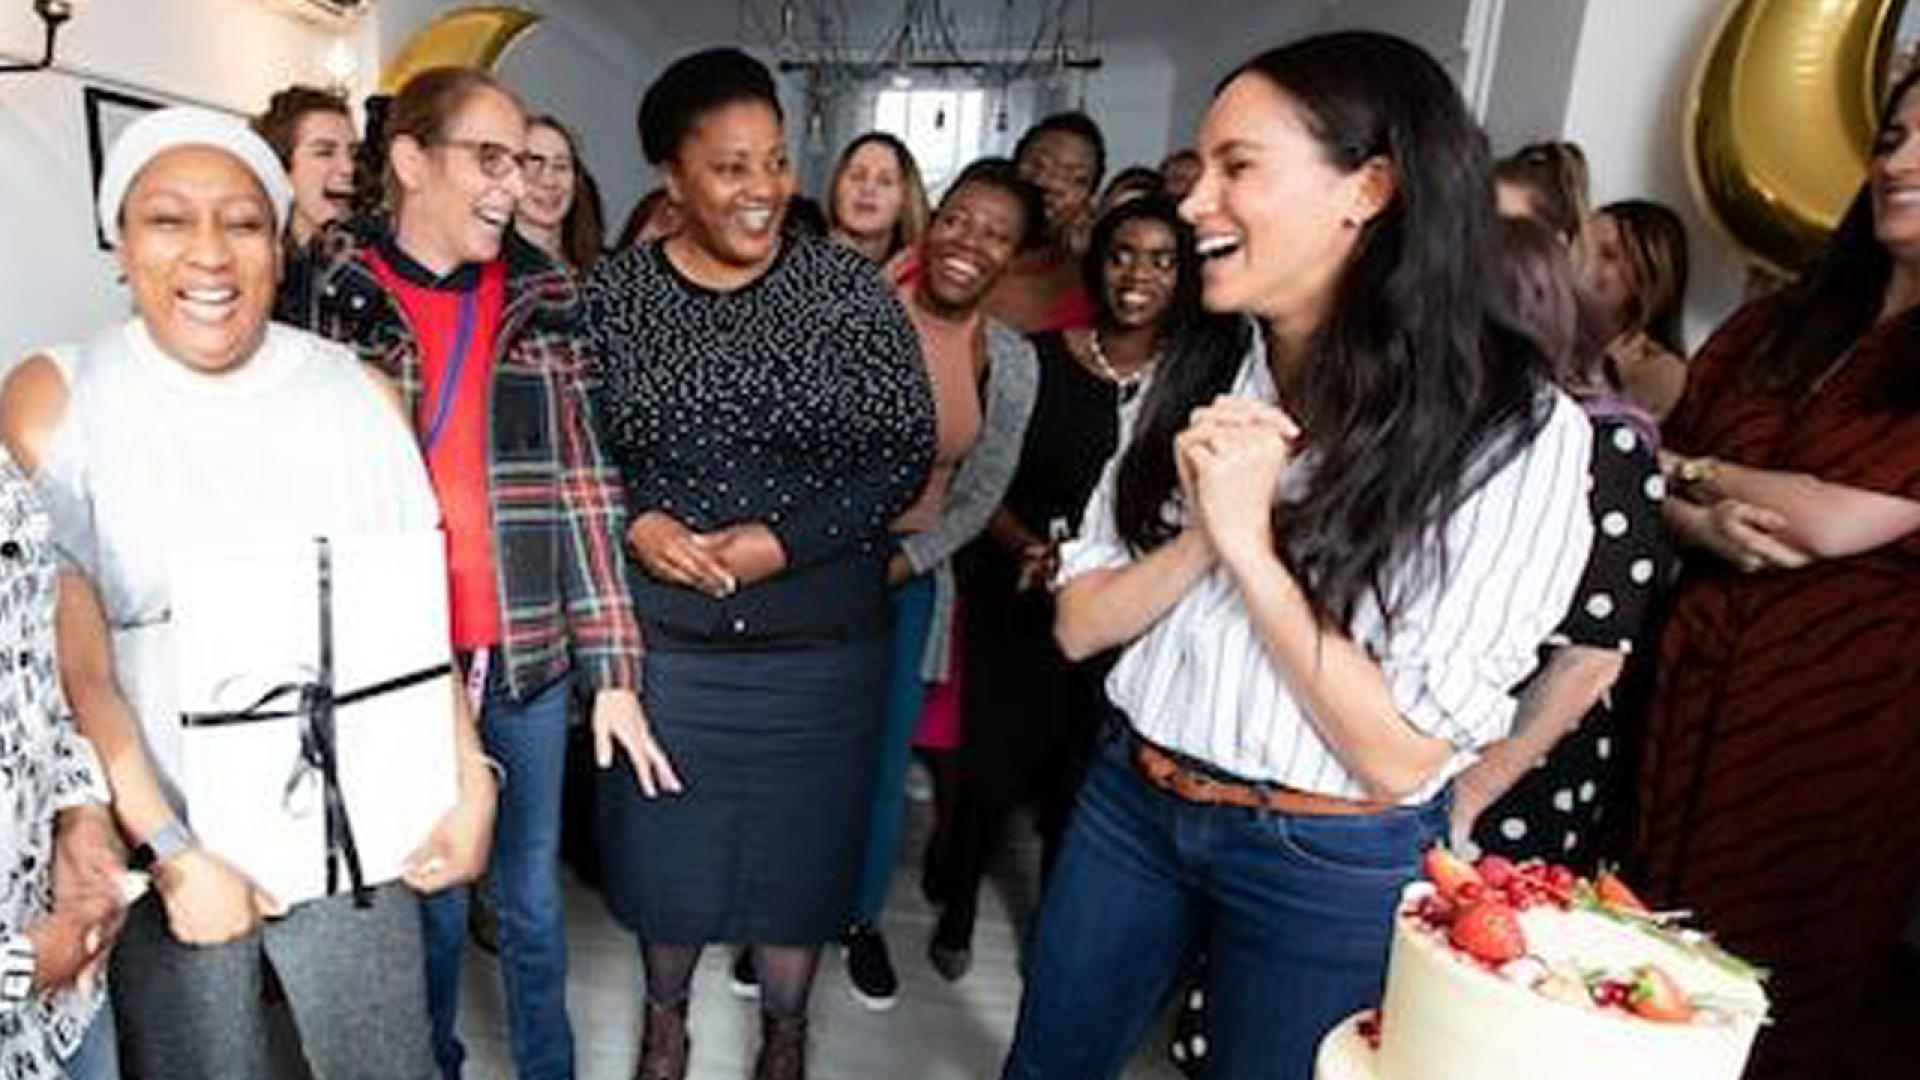 Meghan Markle says she doesn't need to be loved, she needs to be heard.